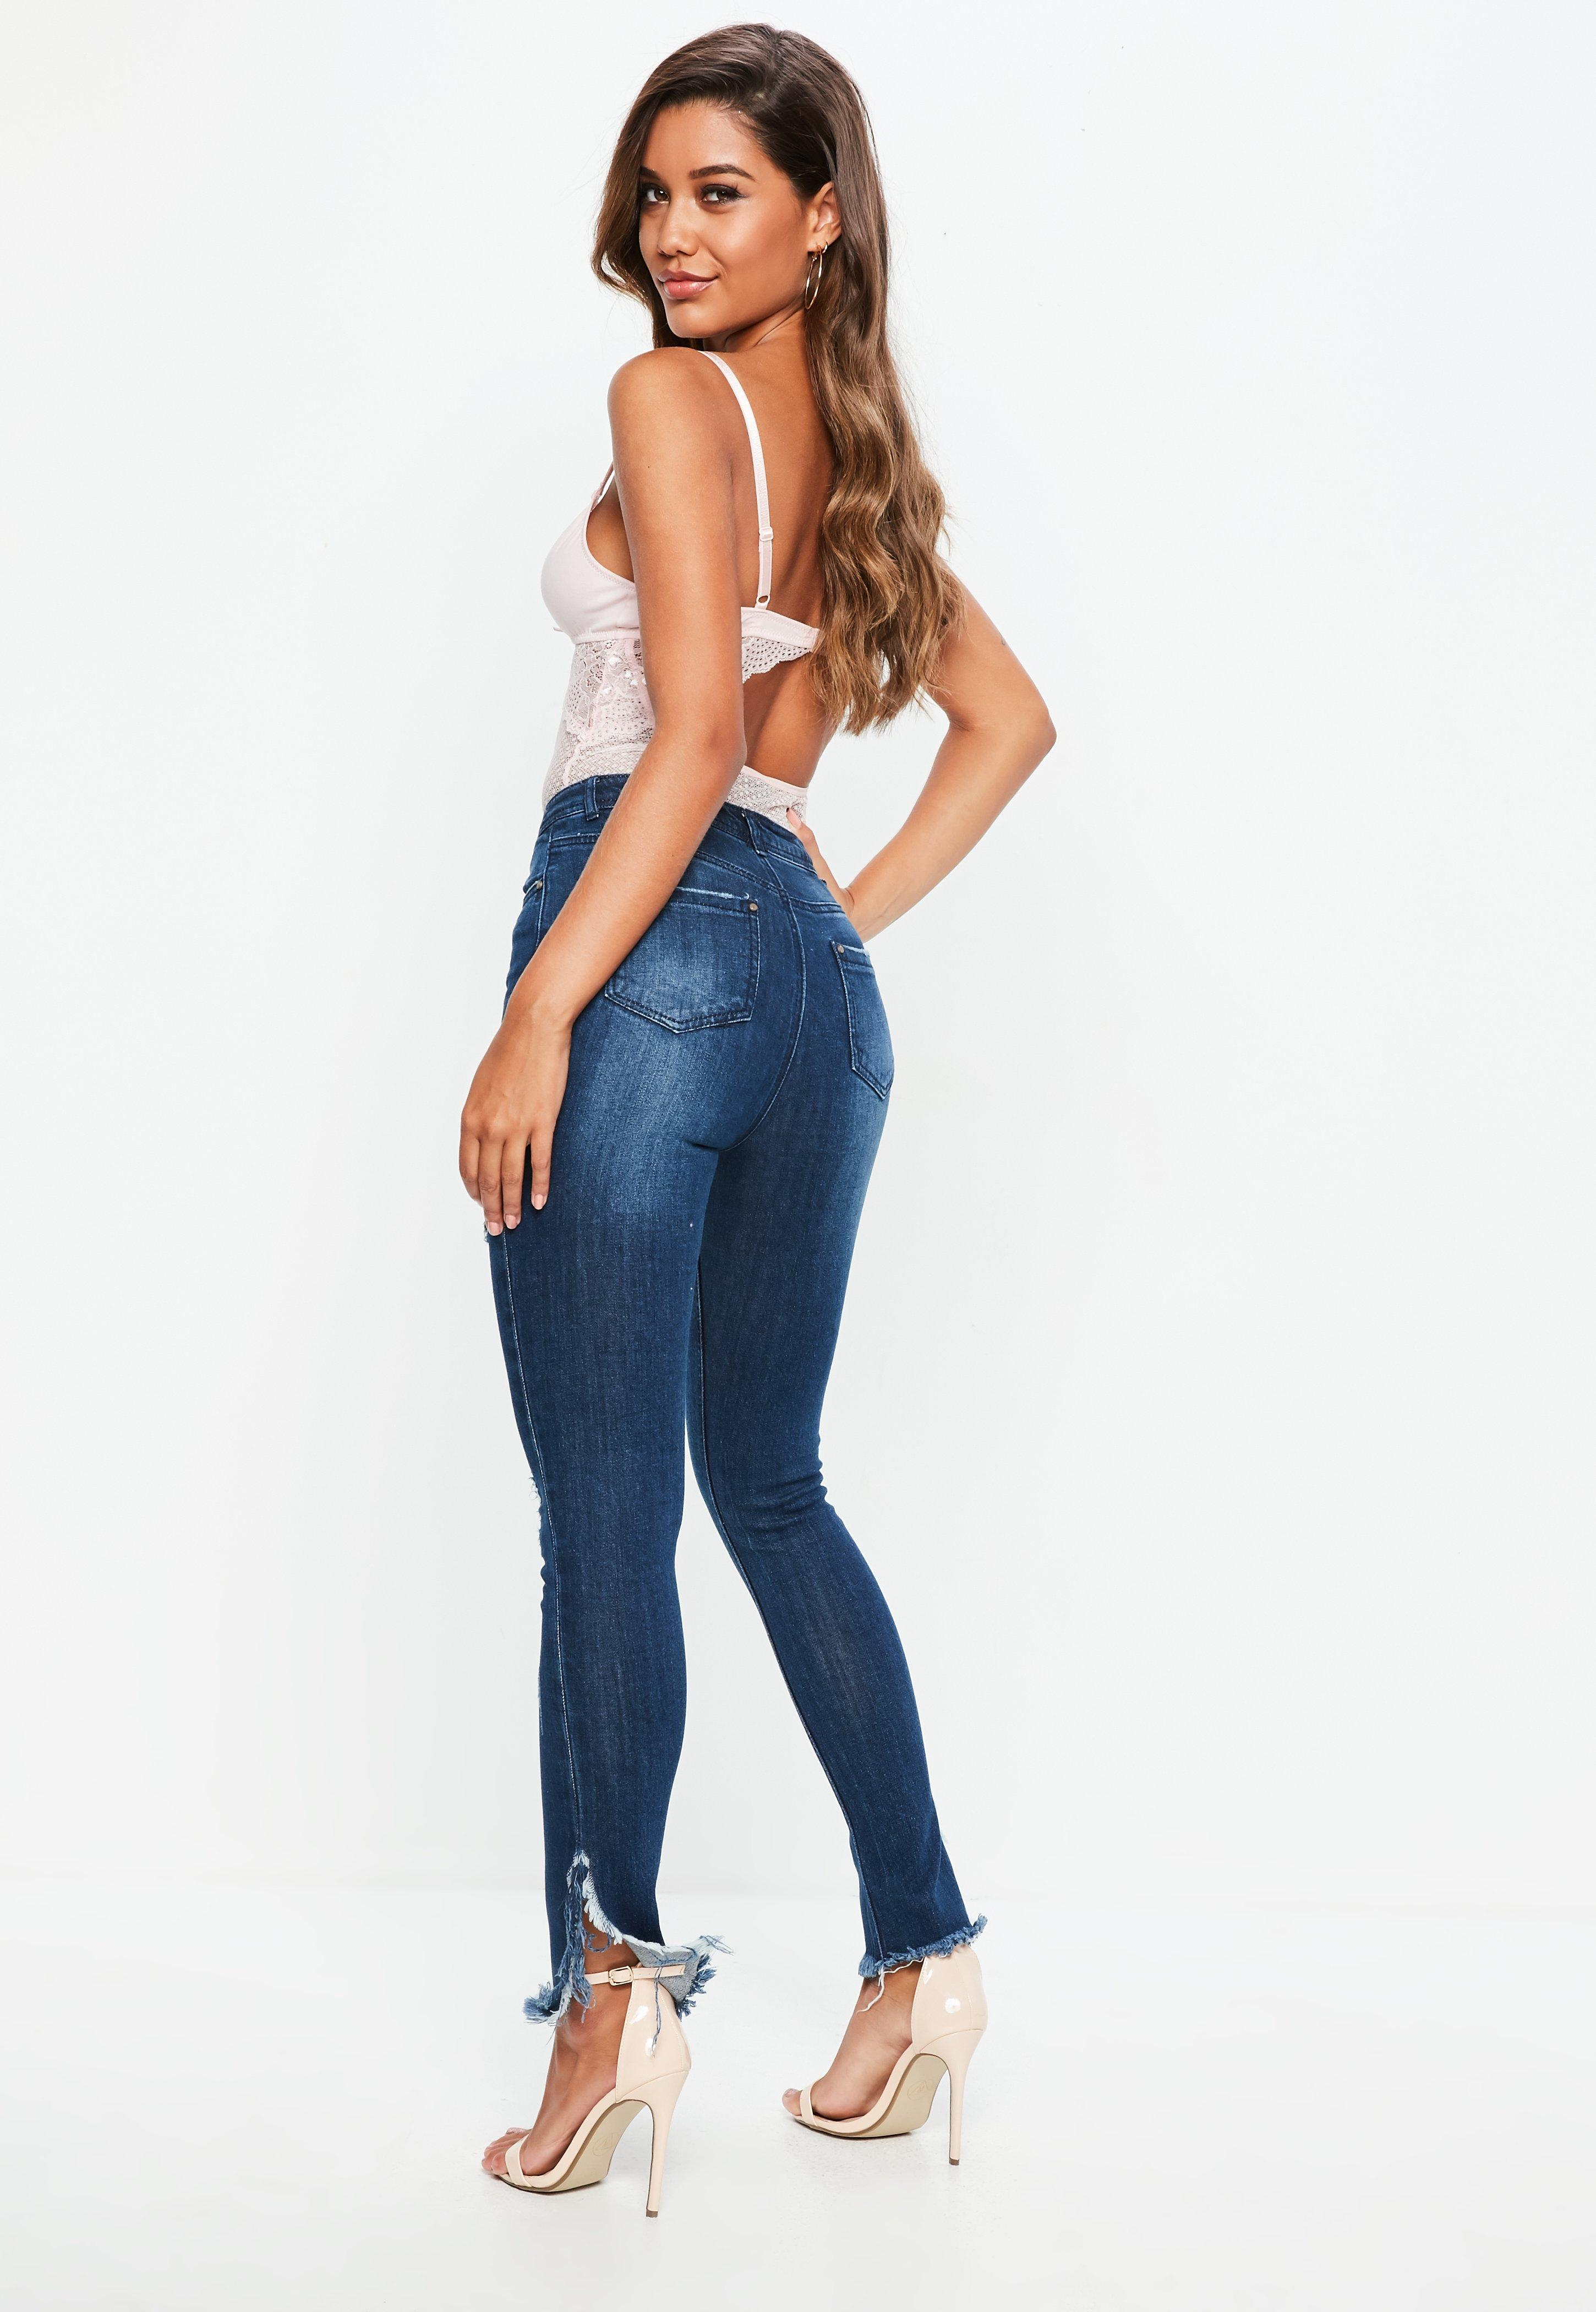 Plus Jeans Distressed Size Skinny